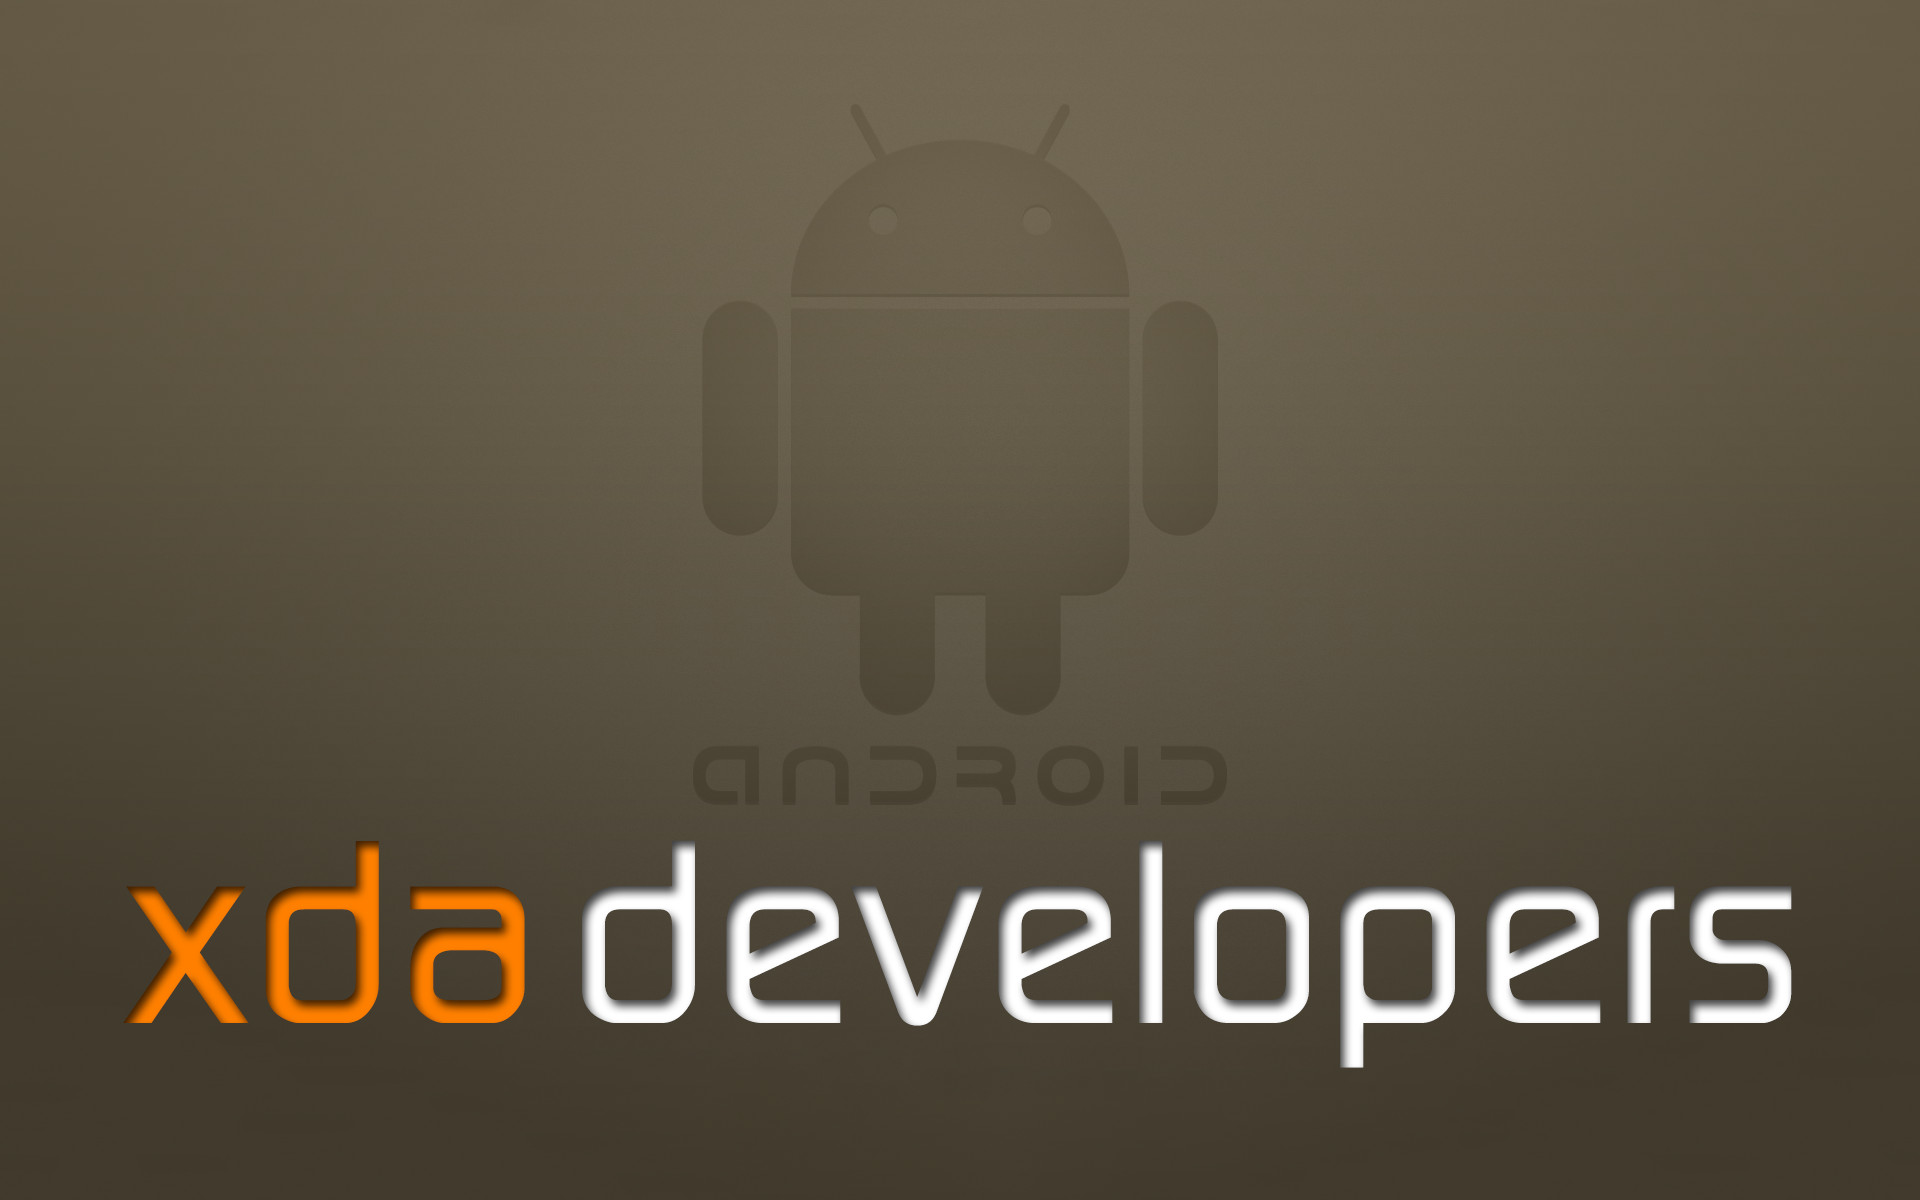 android xda developers full hd wallpaper by divaksh